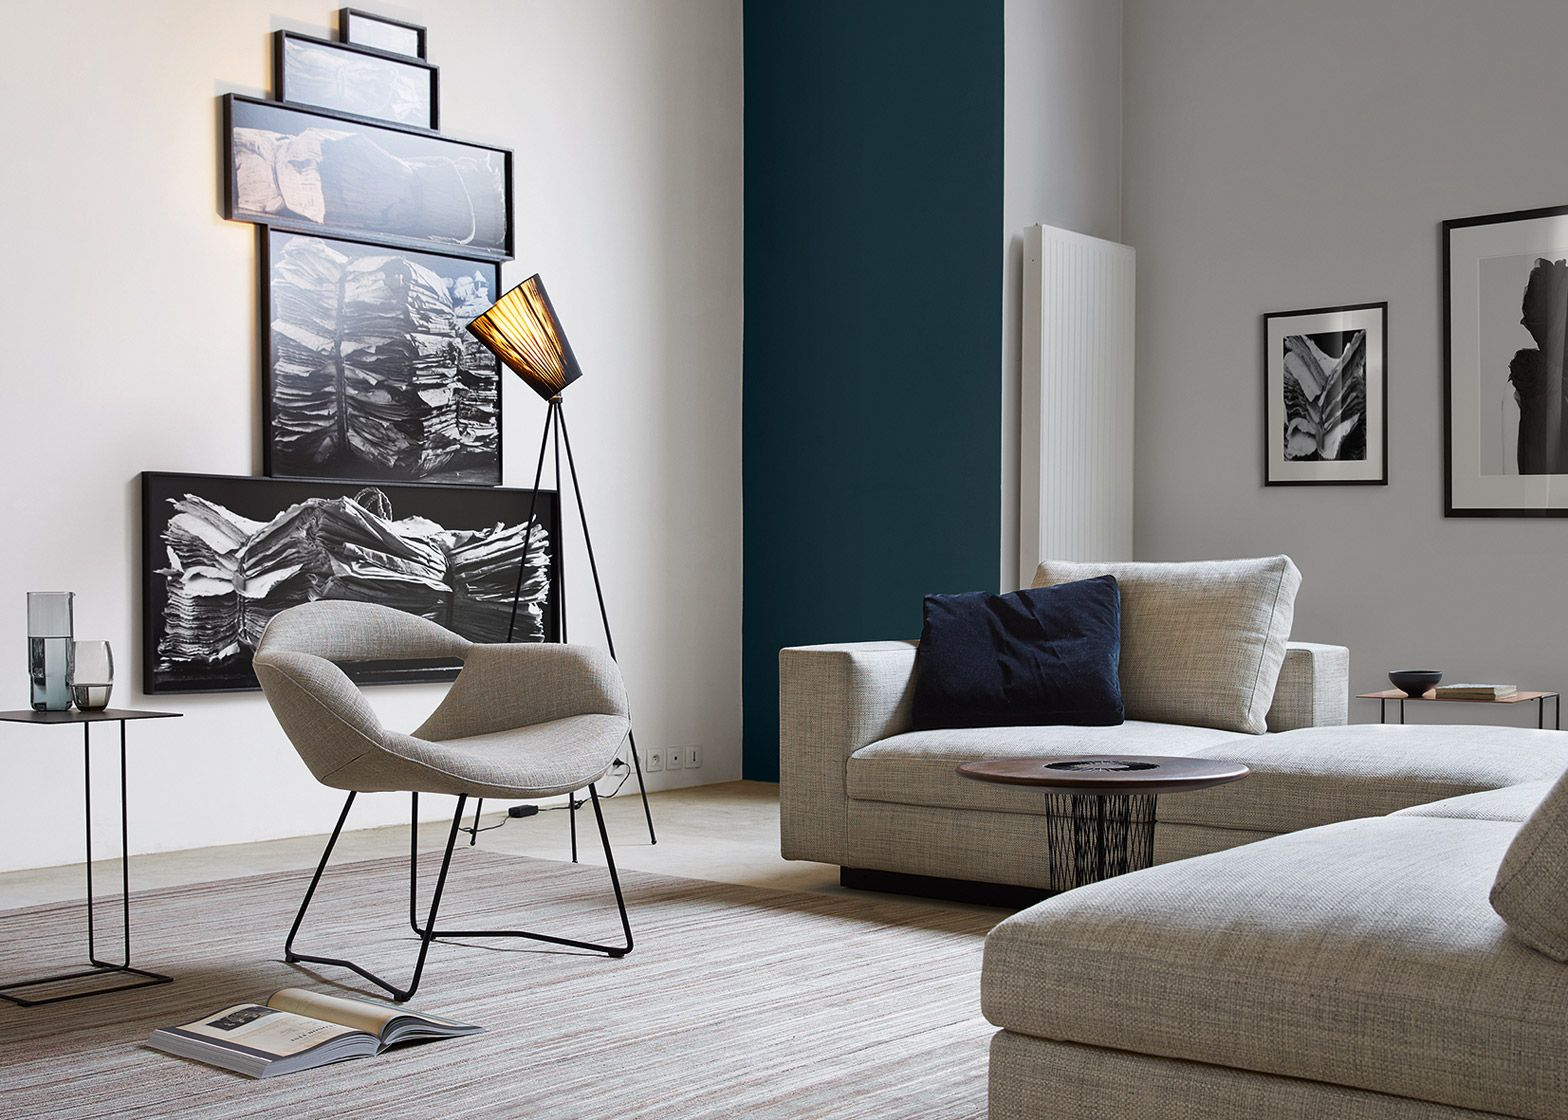 Walter Knoll debuts products including Foster + Partners chair